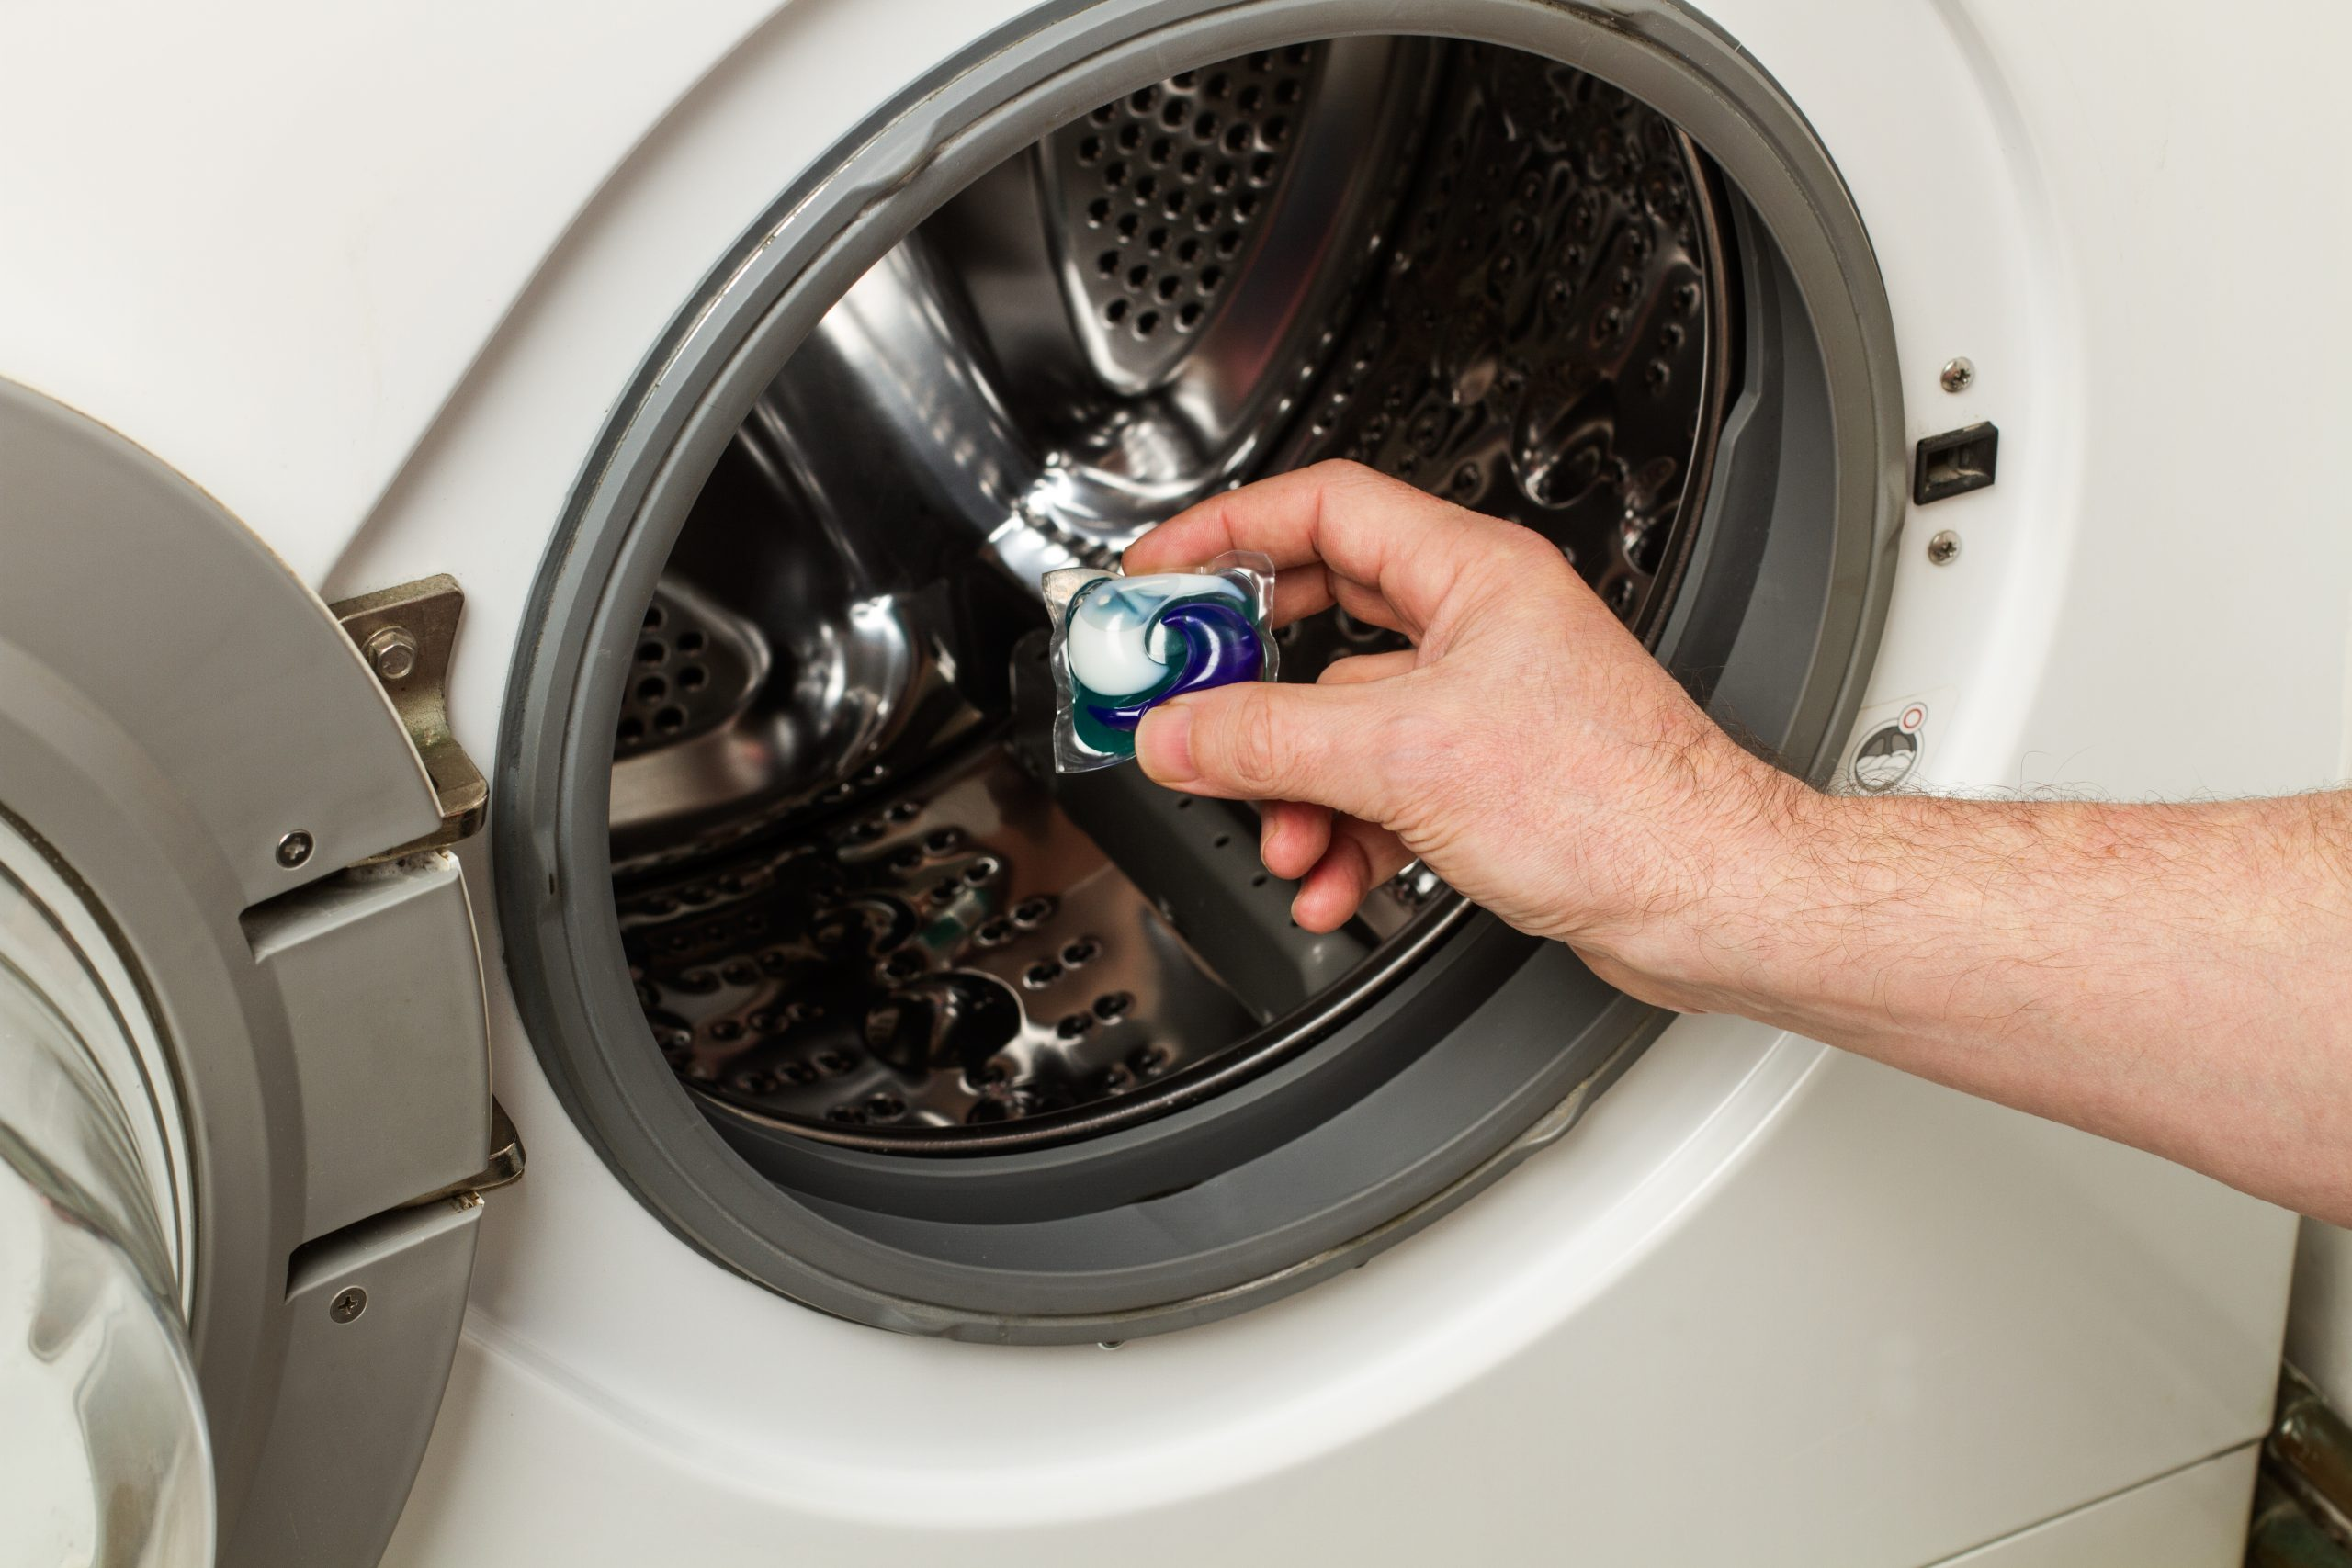 How to Use Tide Pods in Washing Machine